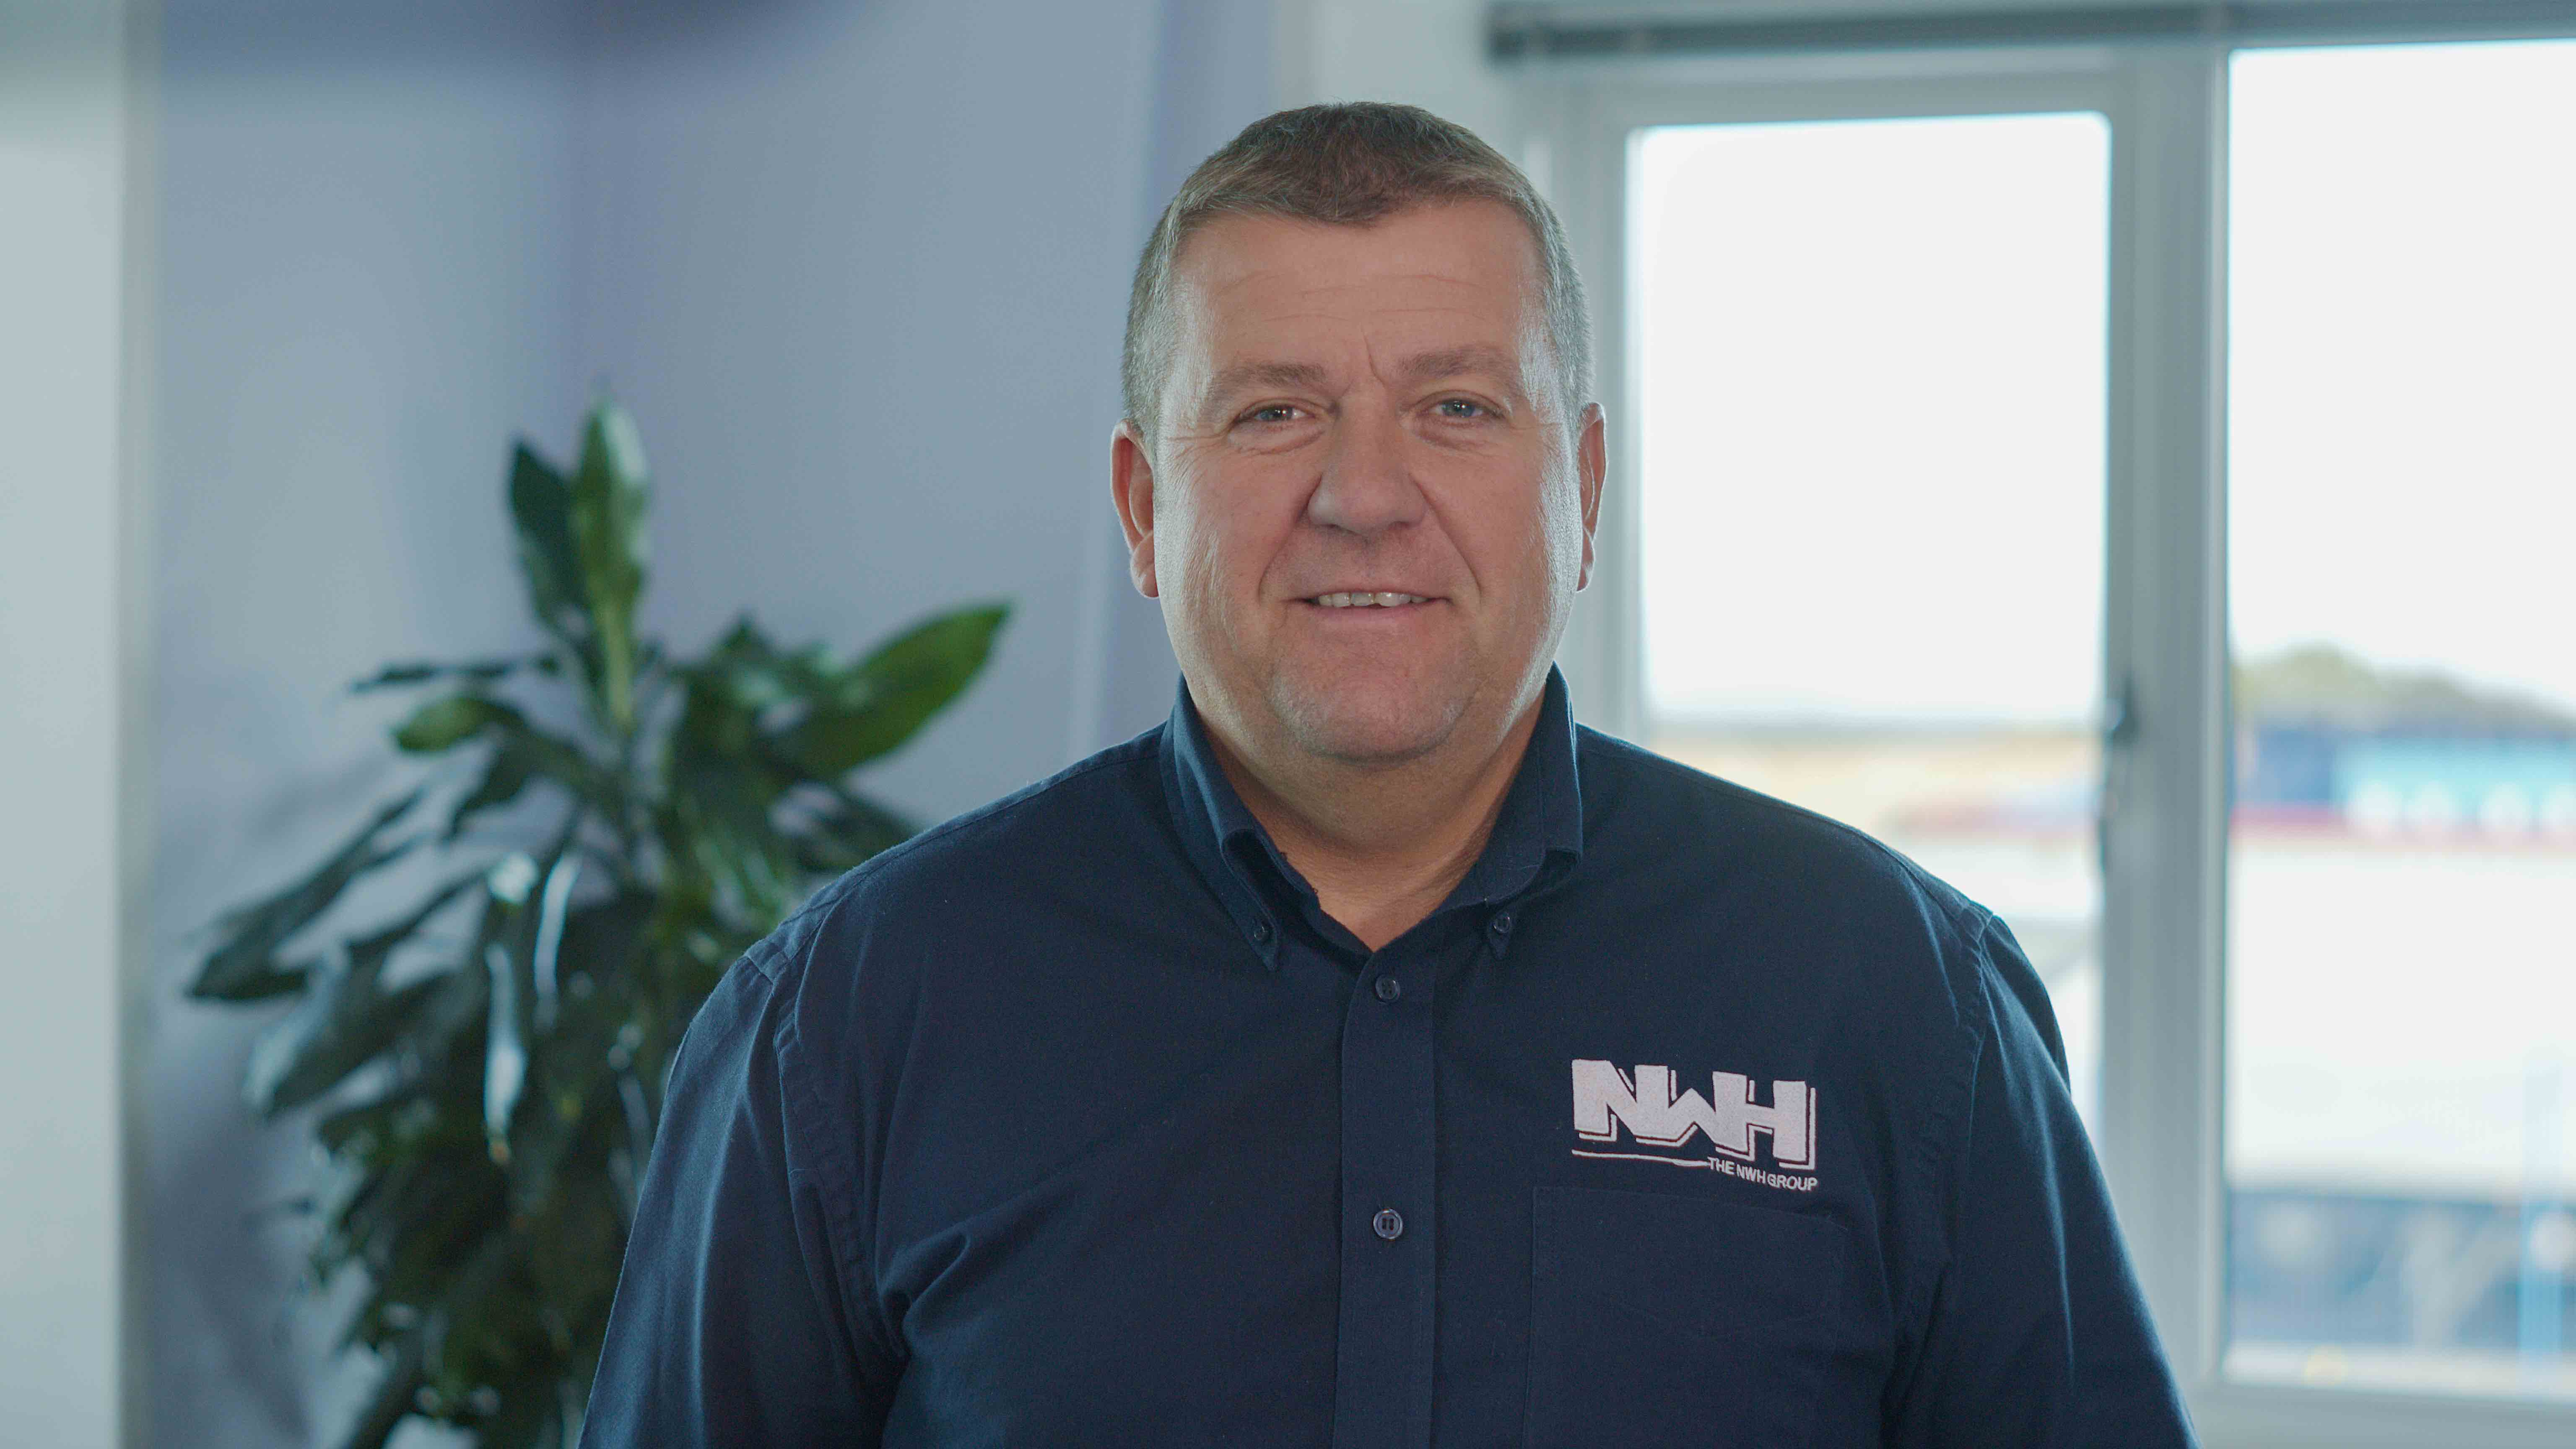 NWH Group selects electric car fleet following advice from Gofor Finance